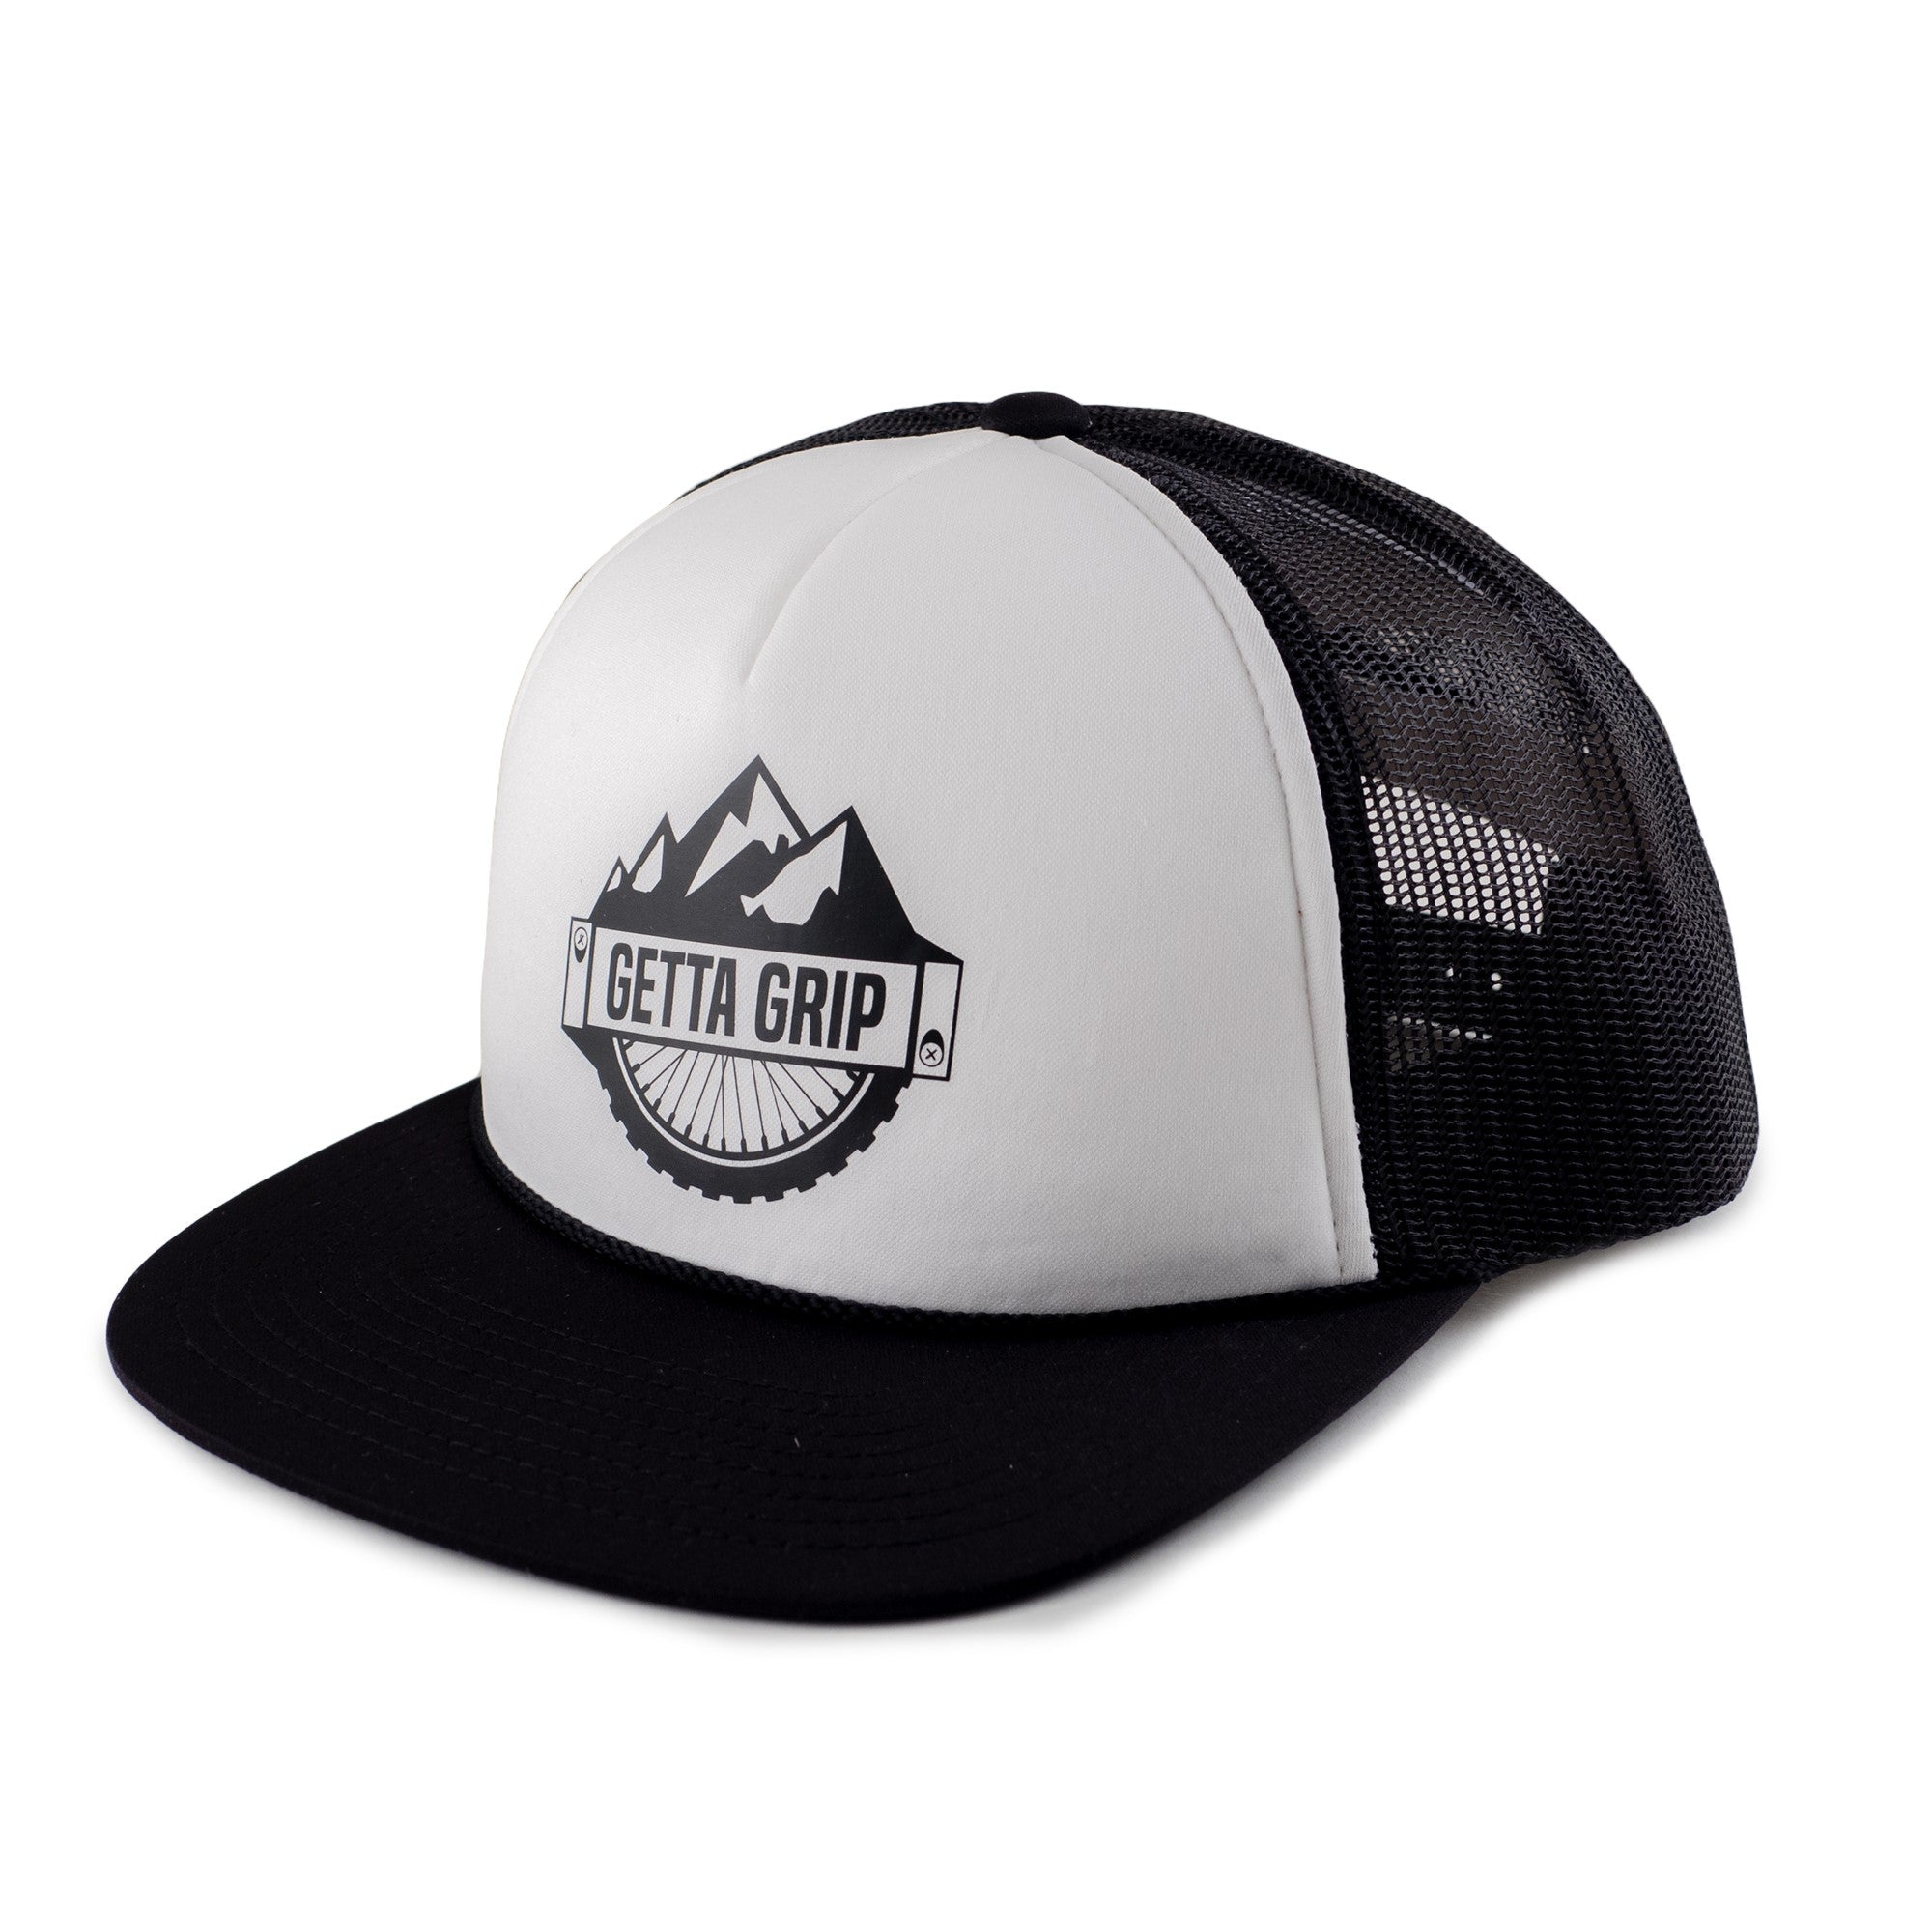 The Trucker hat